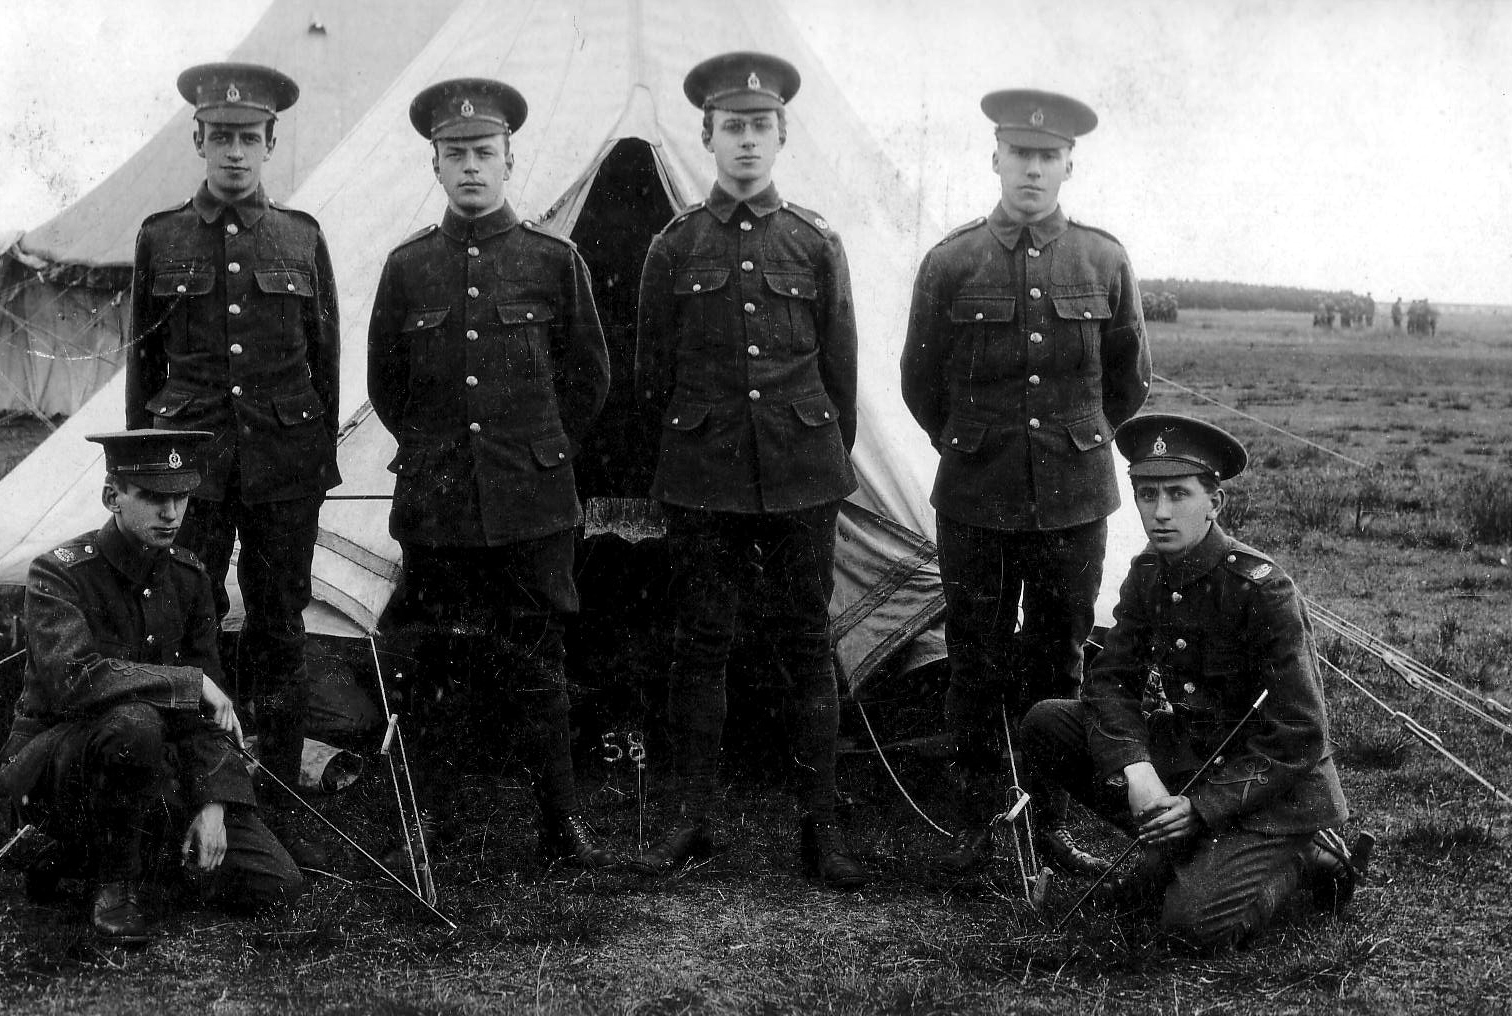 Young Soldiers At Camp c.1914